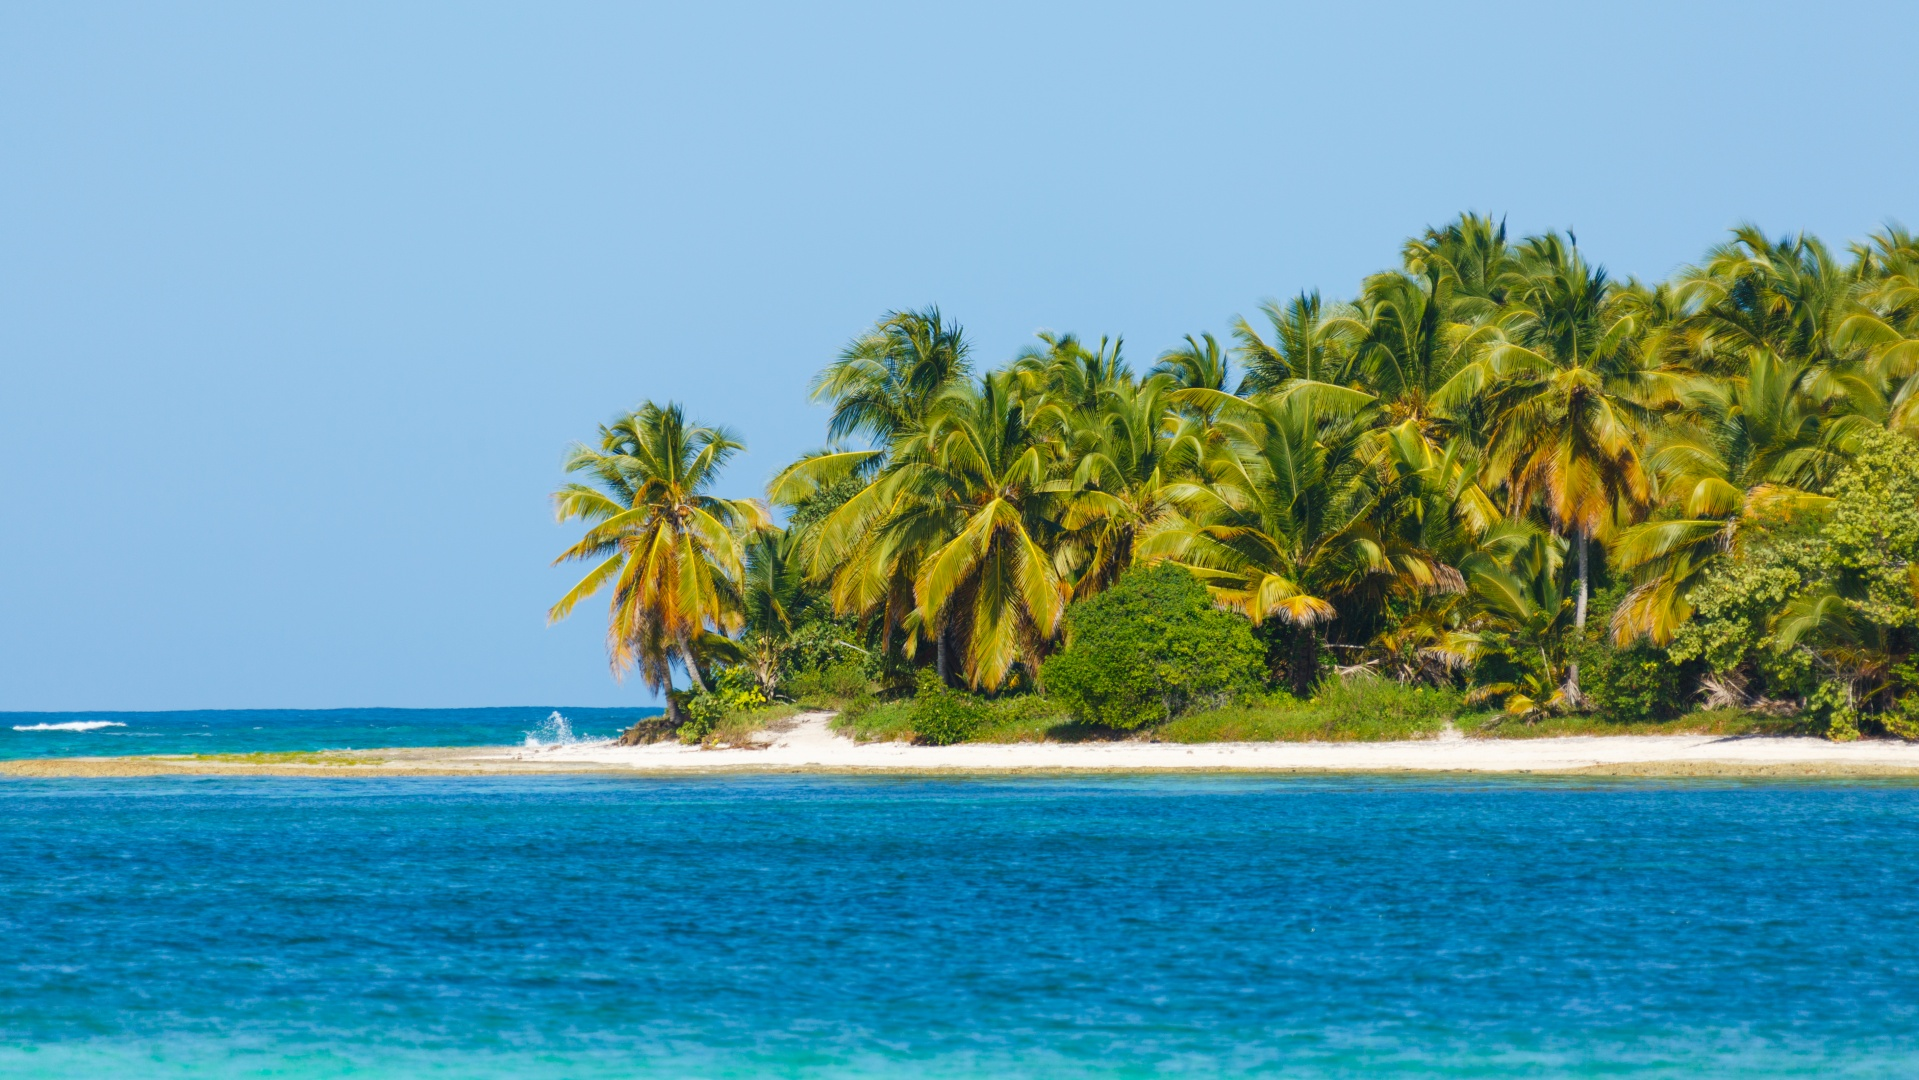 Tropical Island Free Stock Photo - Public Domain Pictures